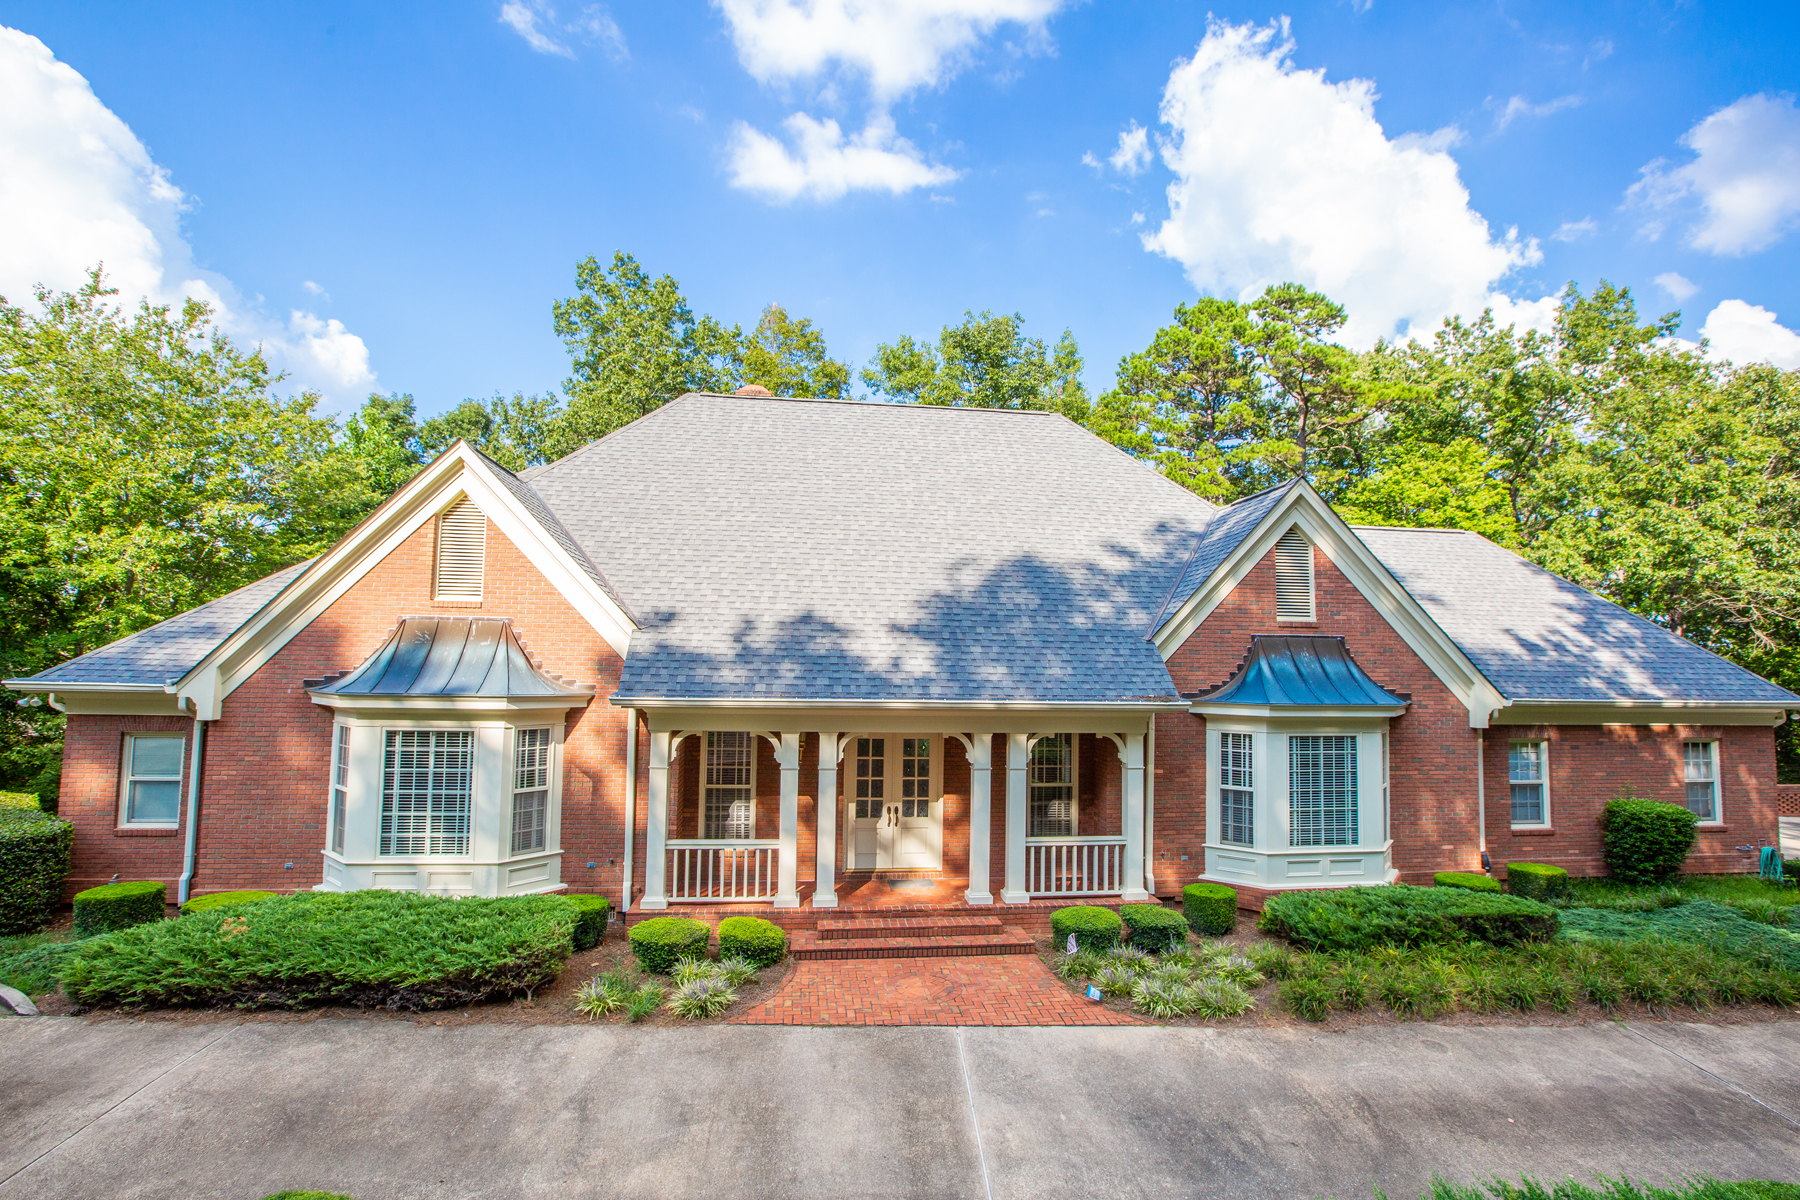 Single Family Home for Sale at Lanier's Best Estate Home 2239 Sidney Drive Gainesville, Georgia 30506 United States